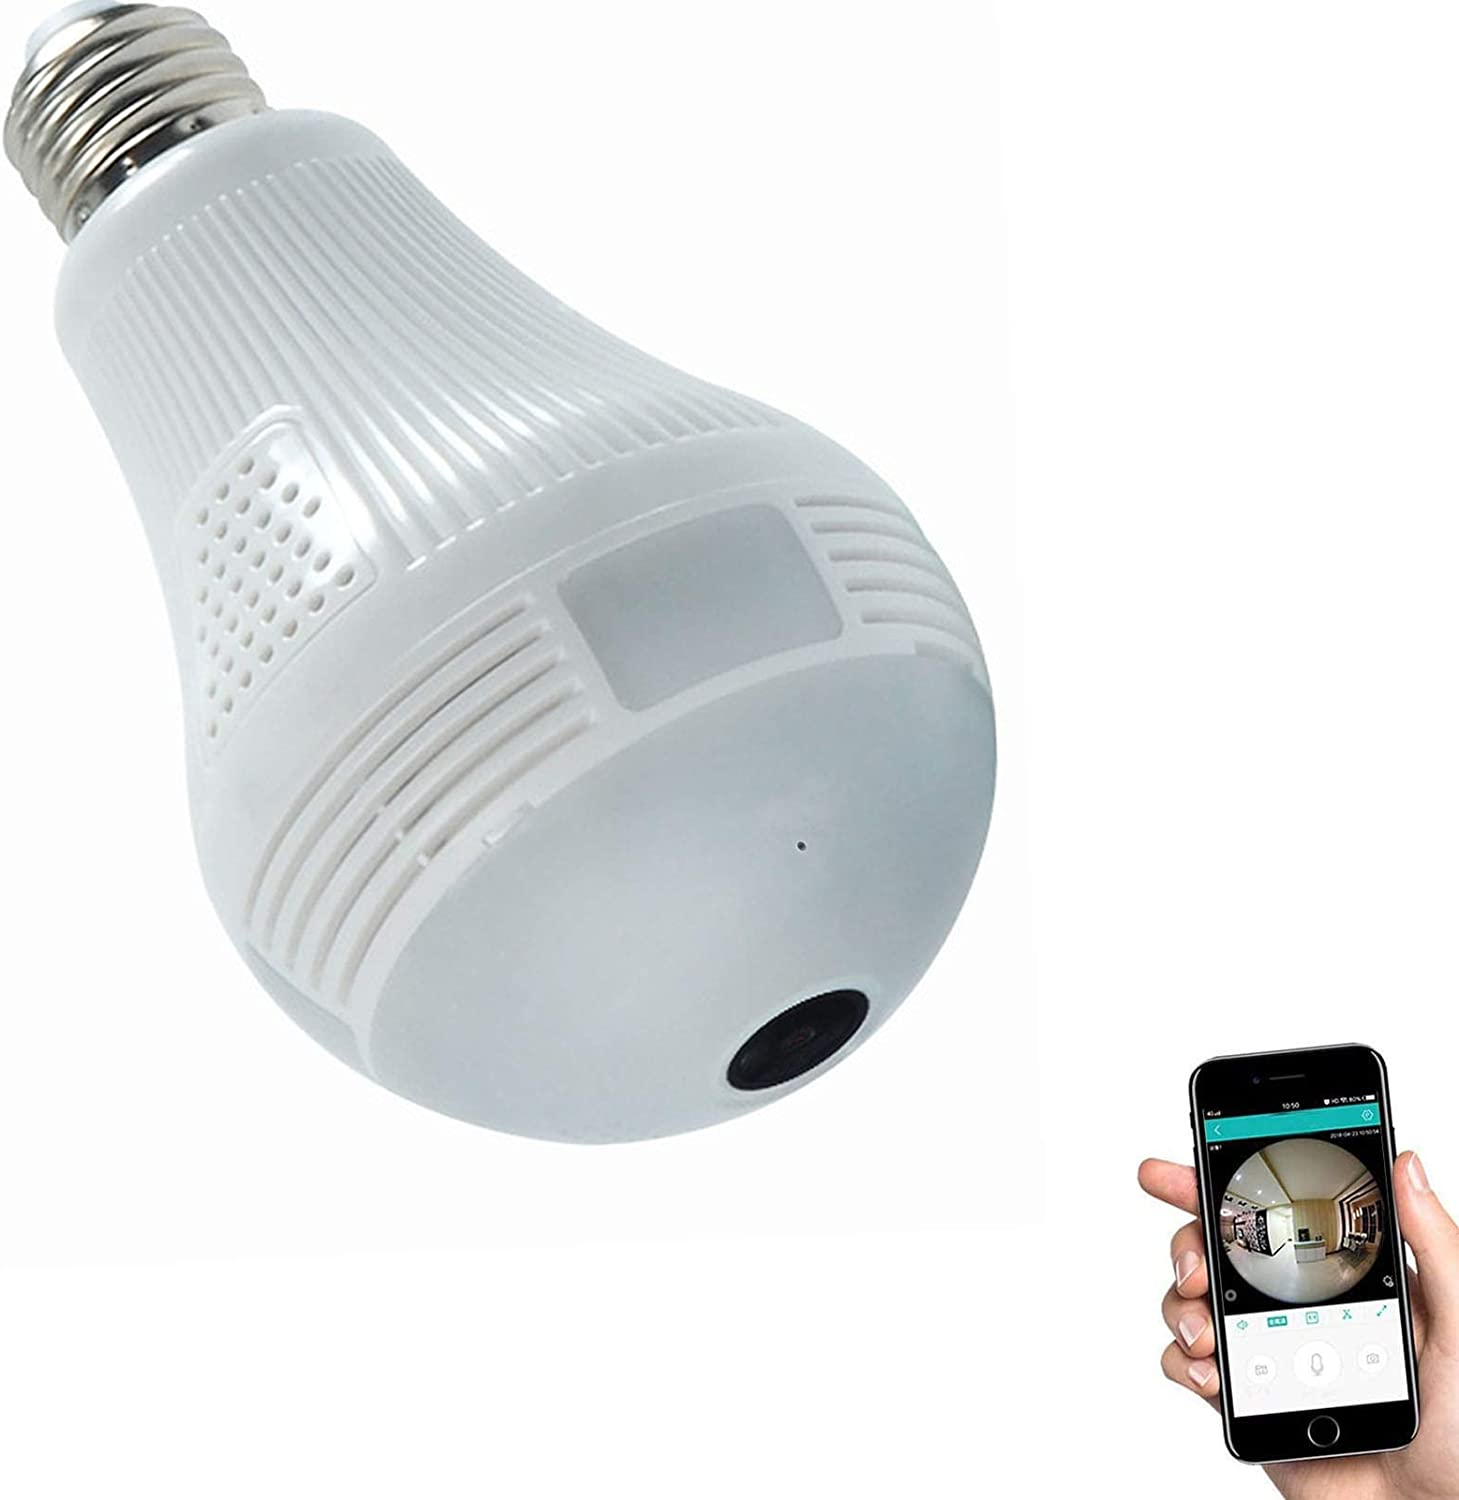 HD 1080P Light Bulb Camera, Include 16GB Card 2.4GHz Wireless Security IP, 360 Degrees Panoramic VR Home Surveillance Dome Cam, with Night Vision Motion Detection Alarm for Baby Office Pet (1080P)